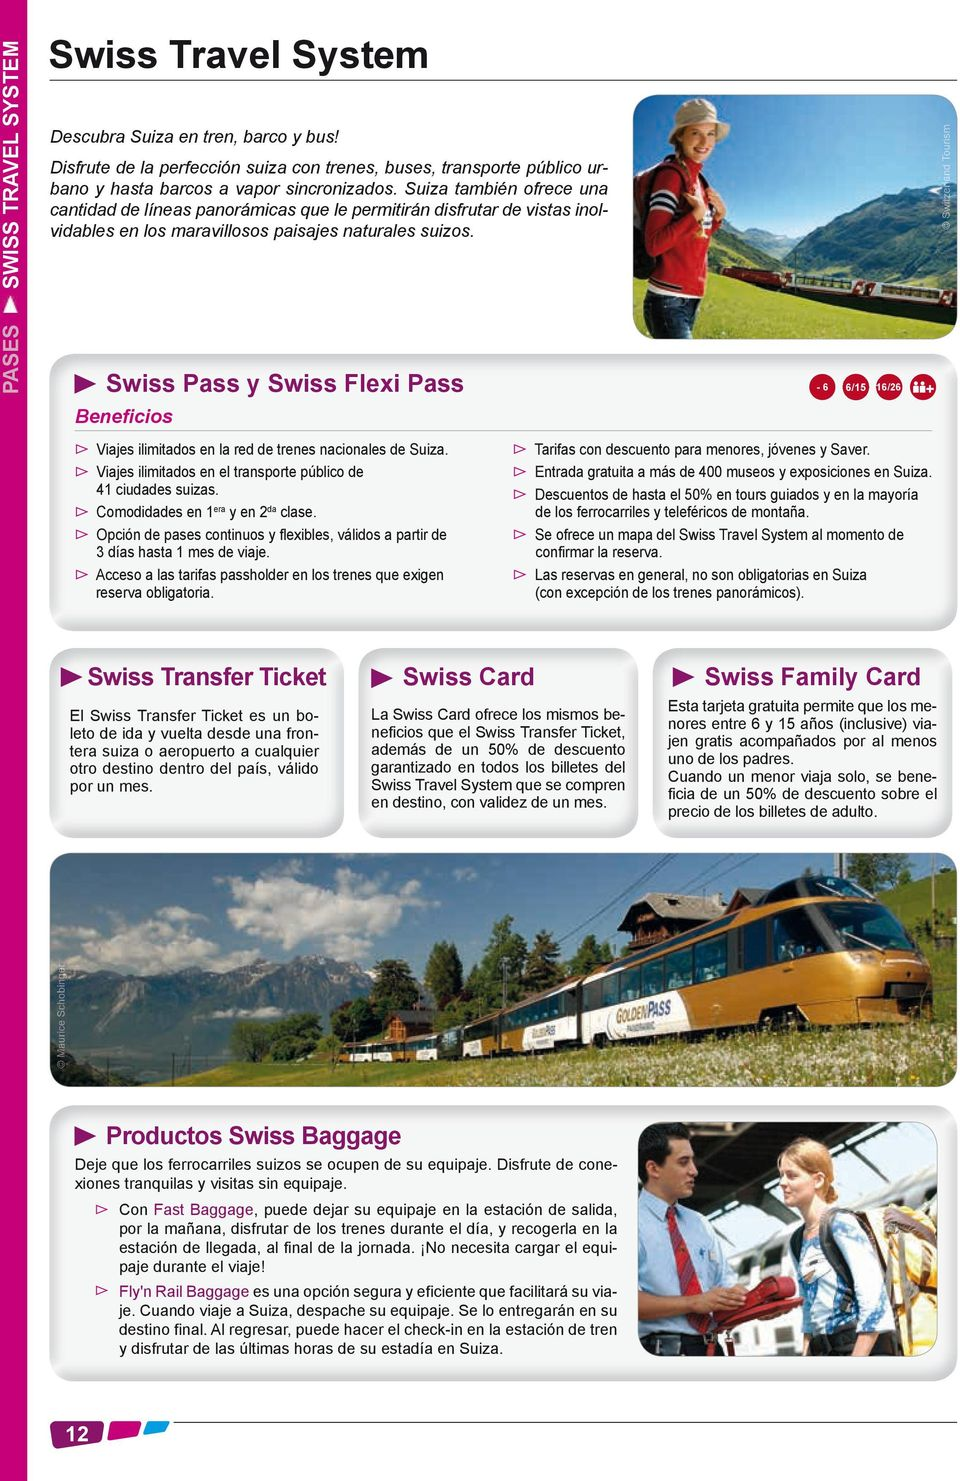 21e1855d0d33 Swiss Pass y Swiss Flexi Pass - 6 6 15 16 26 Beneficios Switzerland